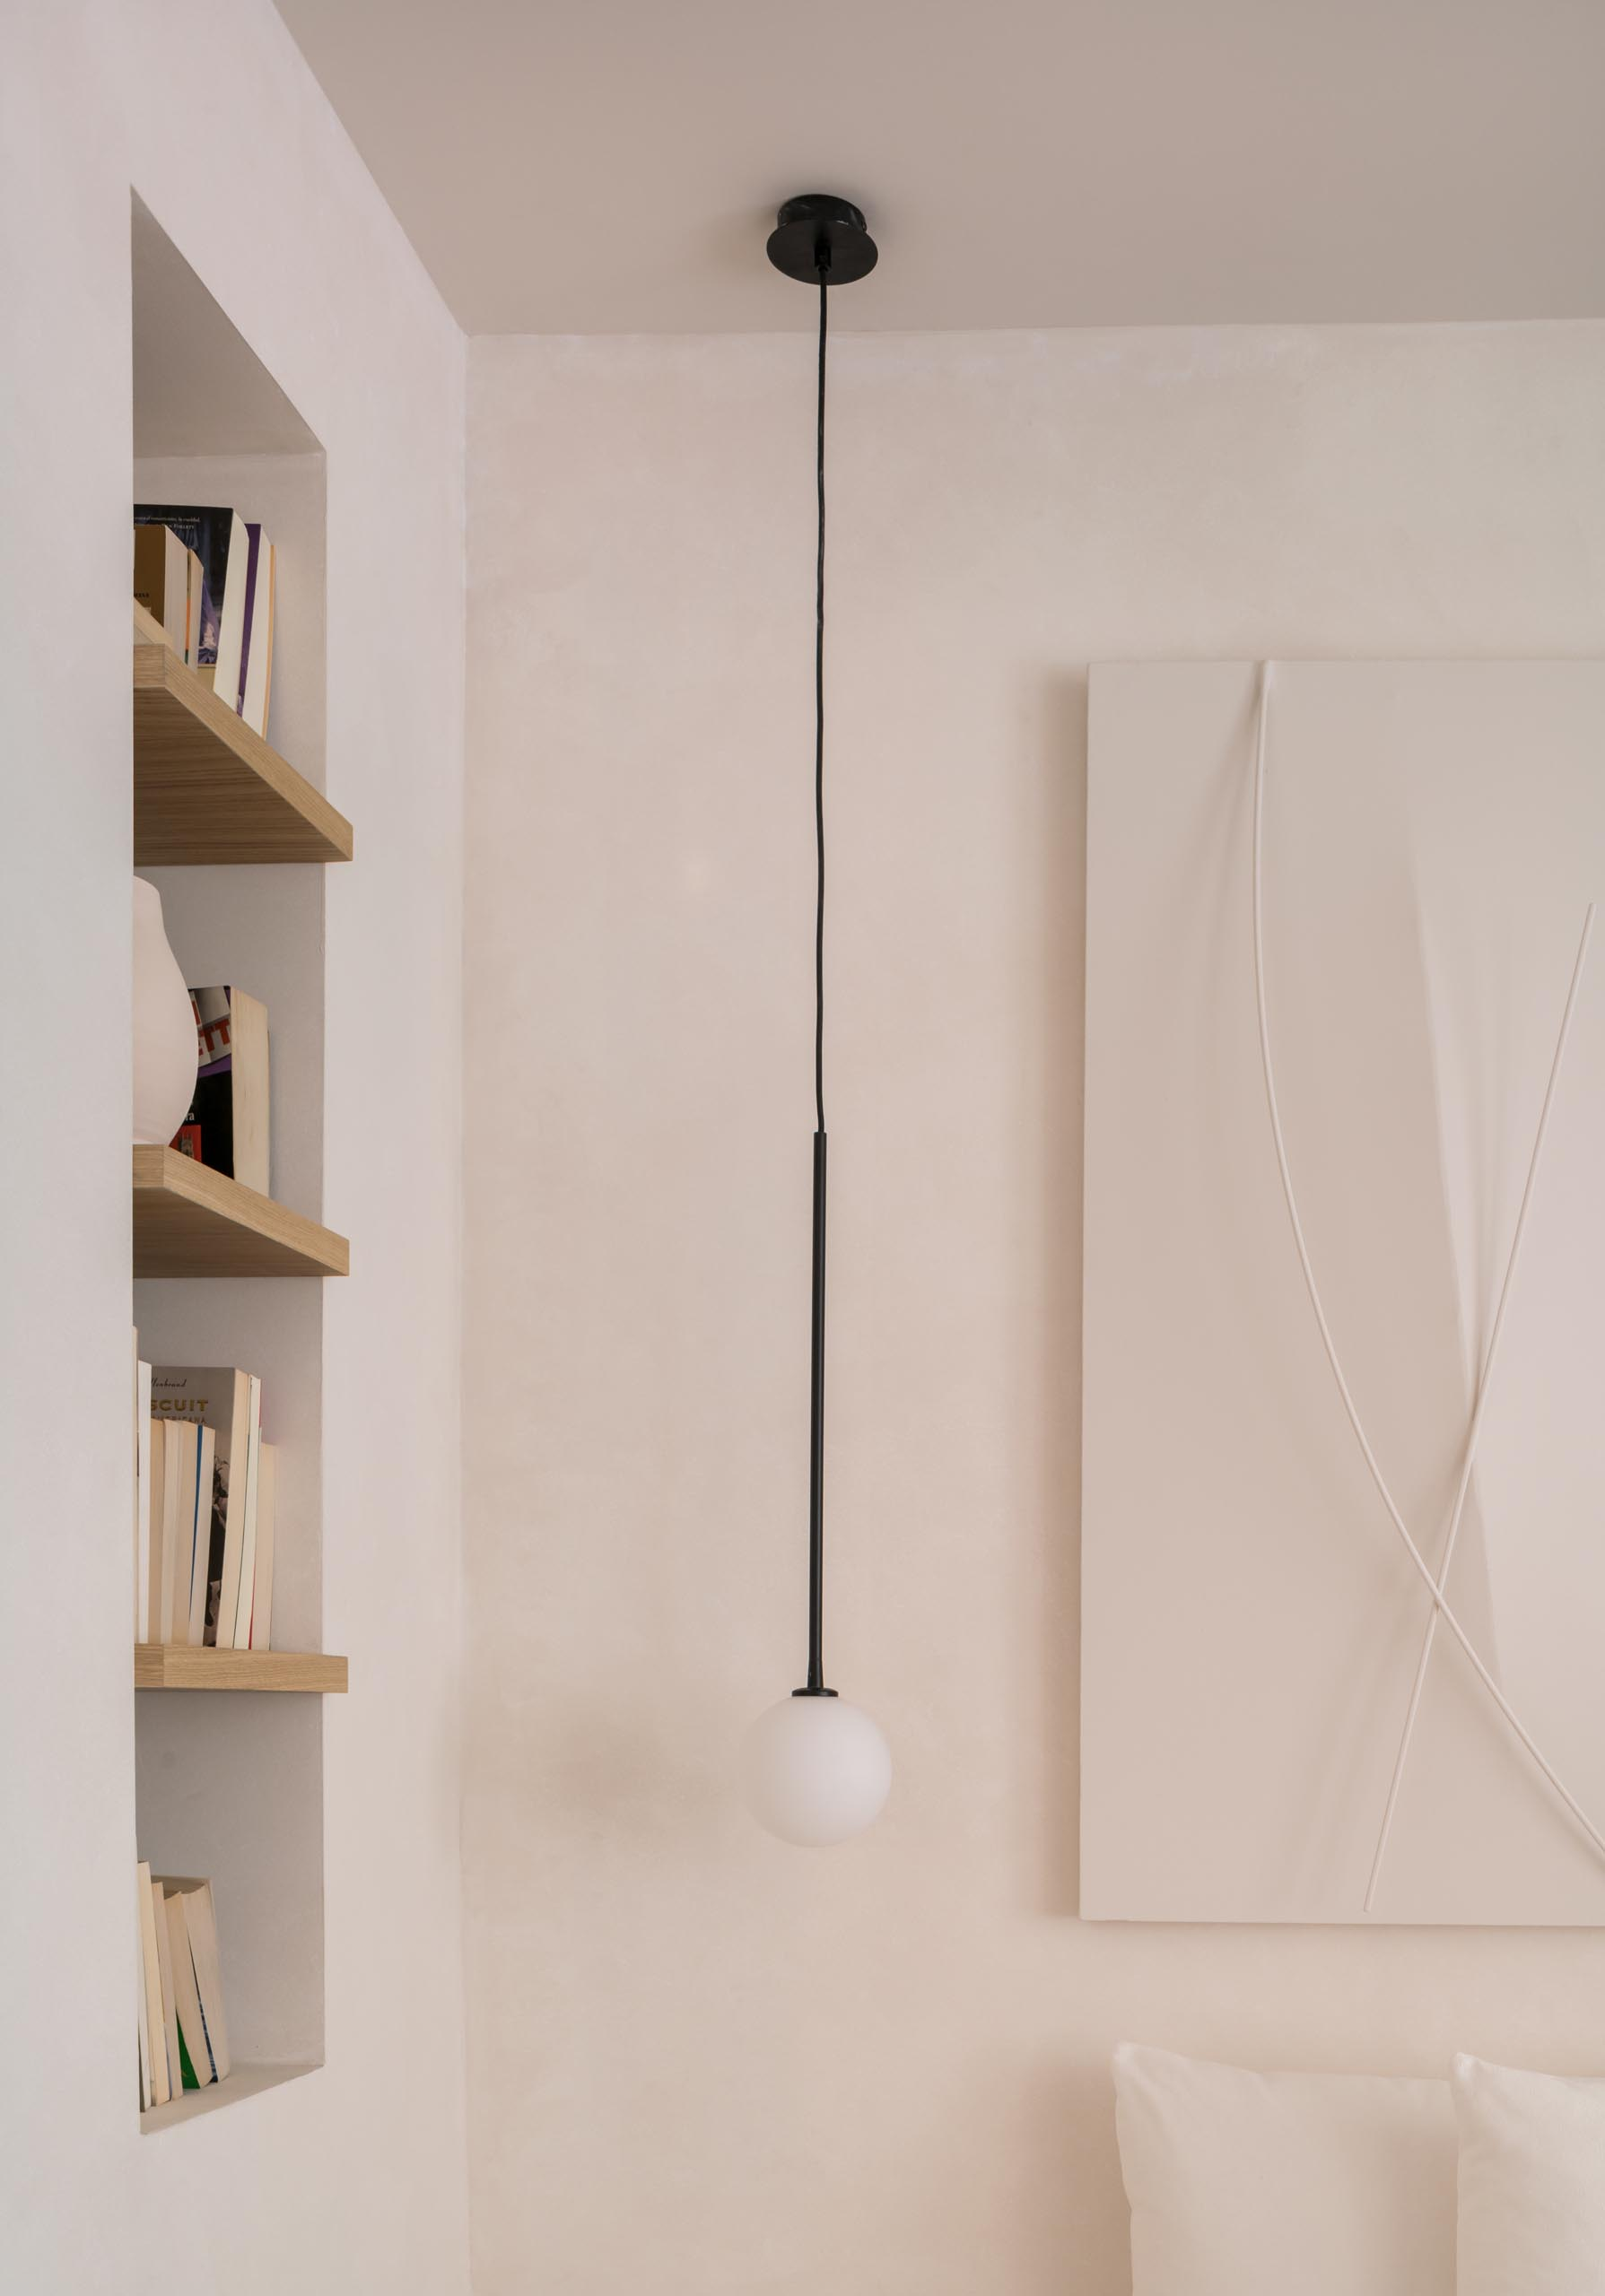 A recessed nook with built-in wood shelves.